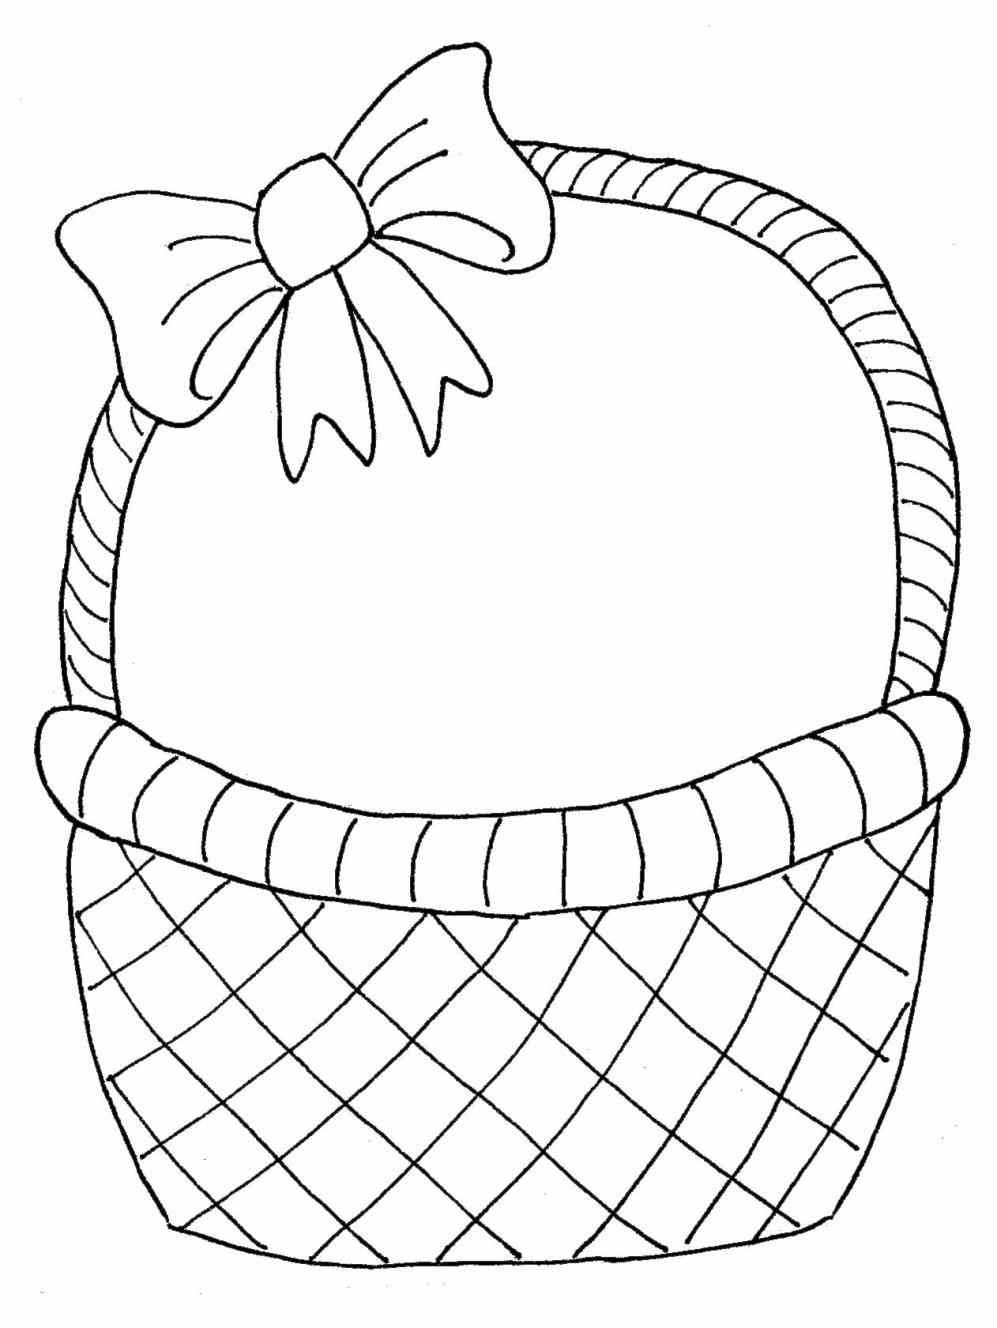 Basket black and white clipart 4 » Clipart Station.